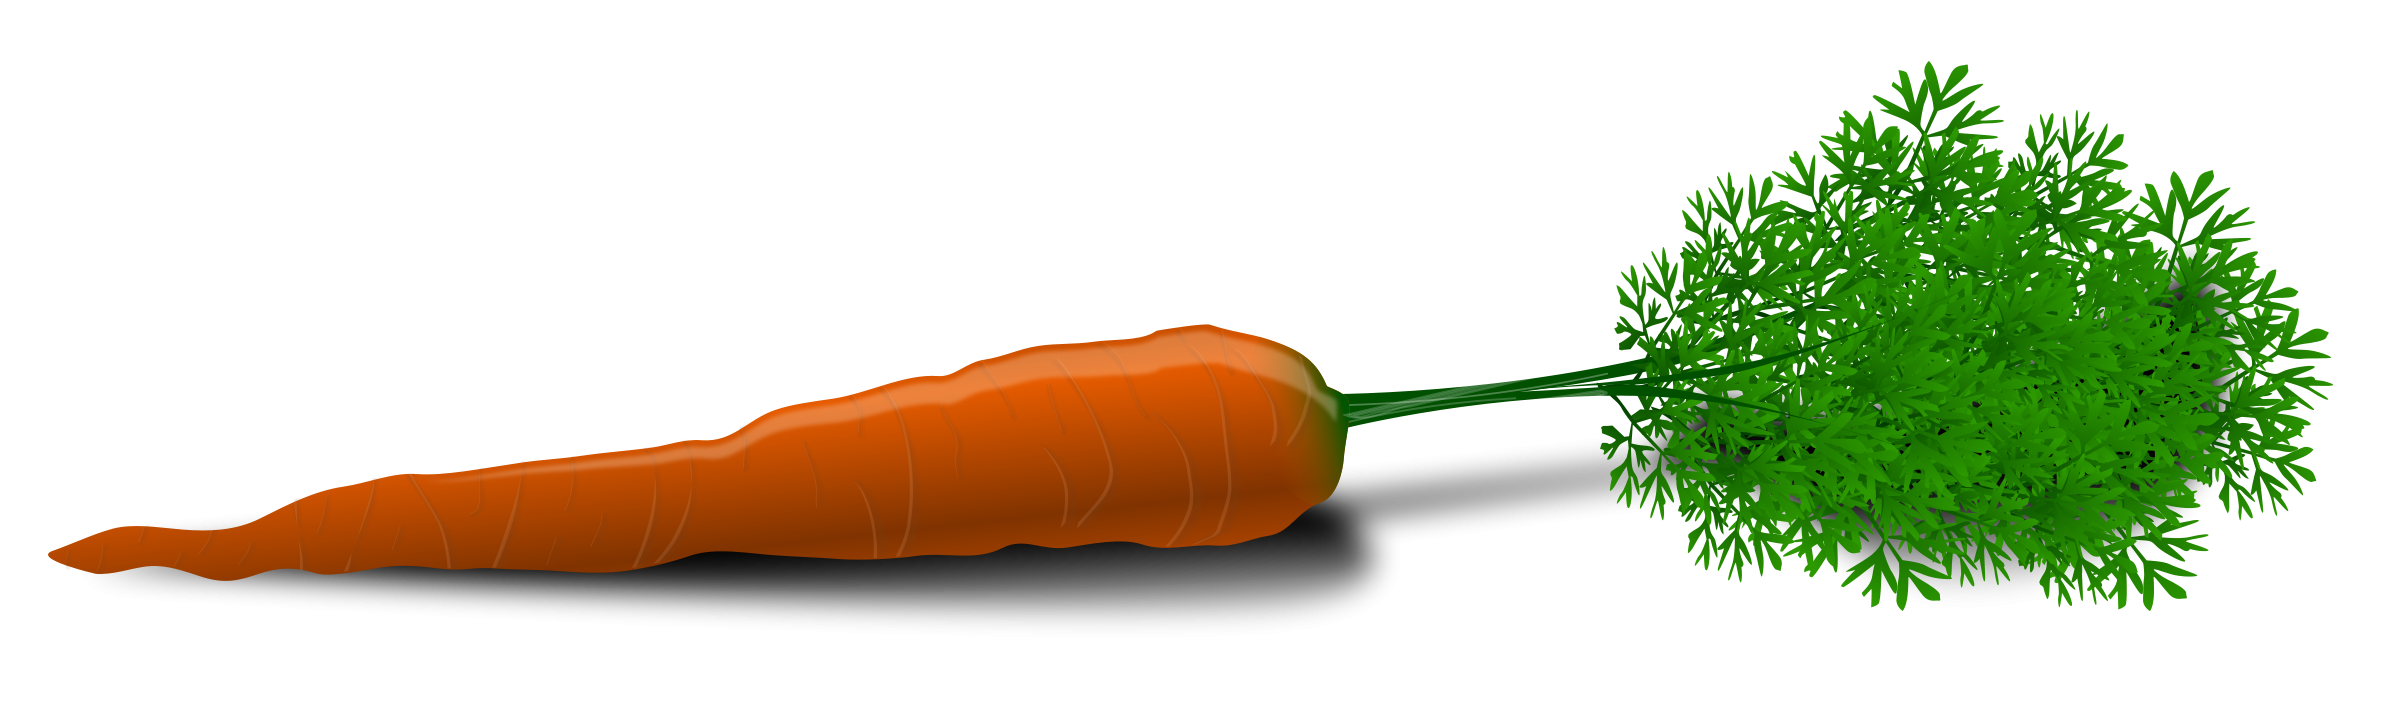 Carrot PNG - 19916